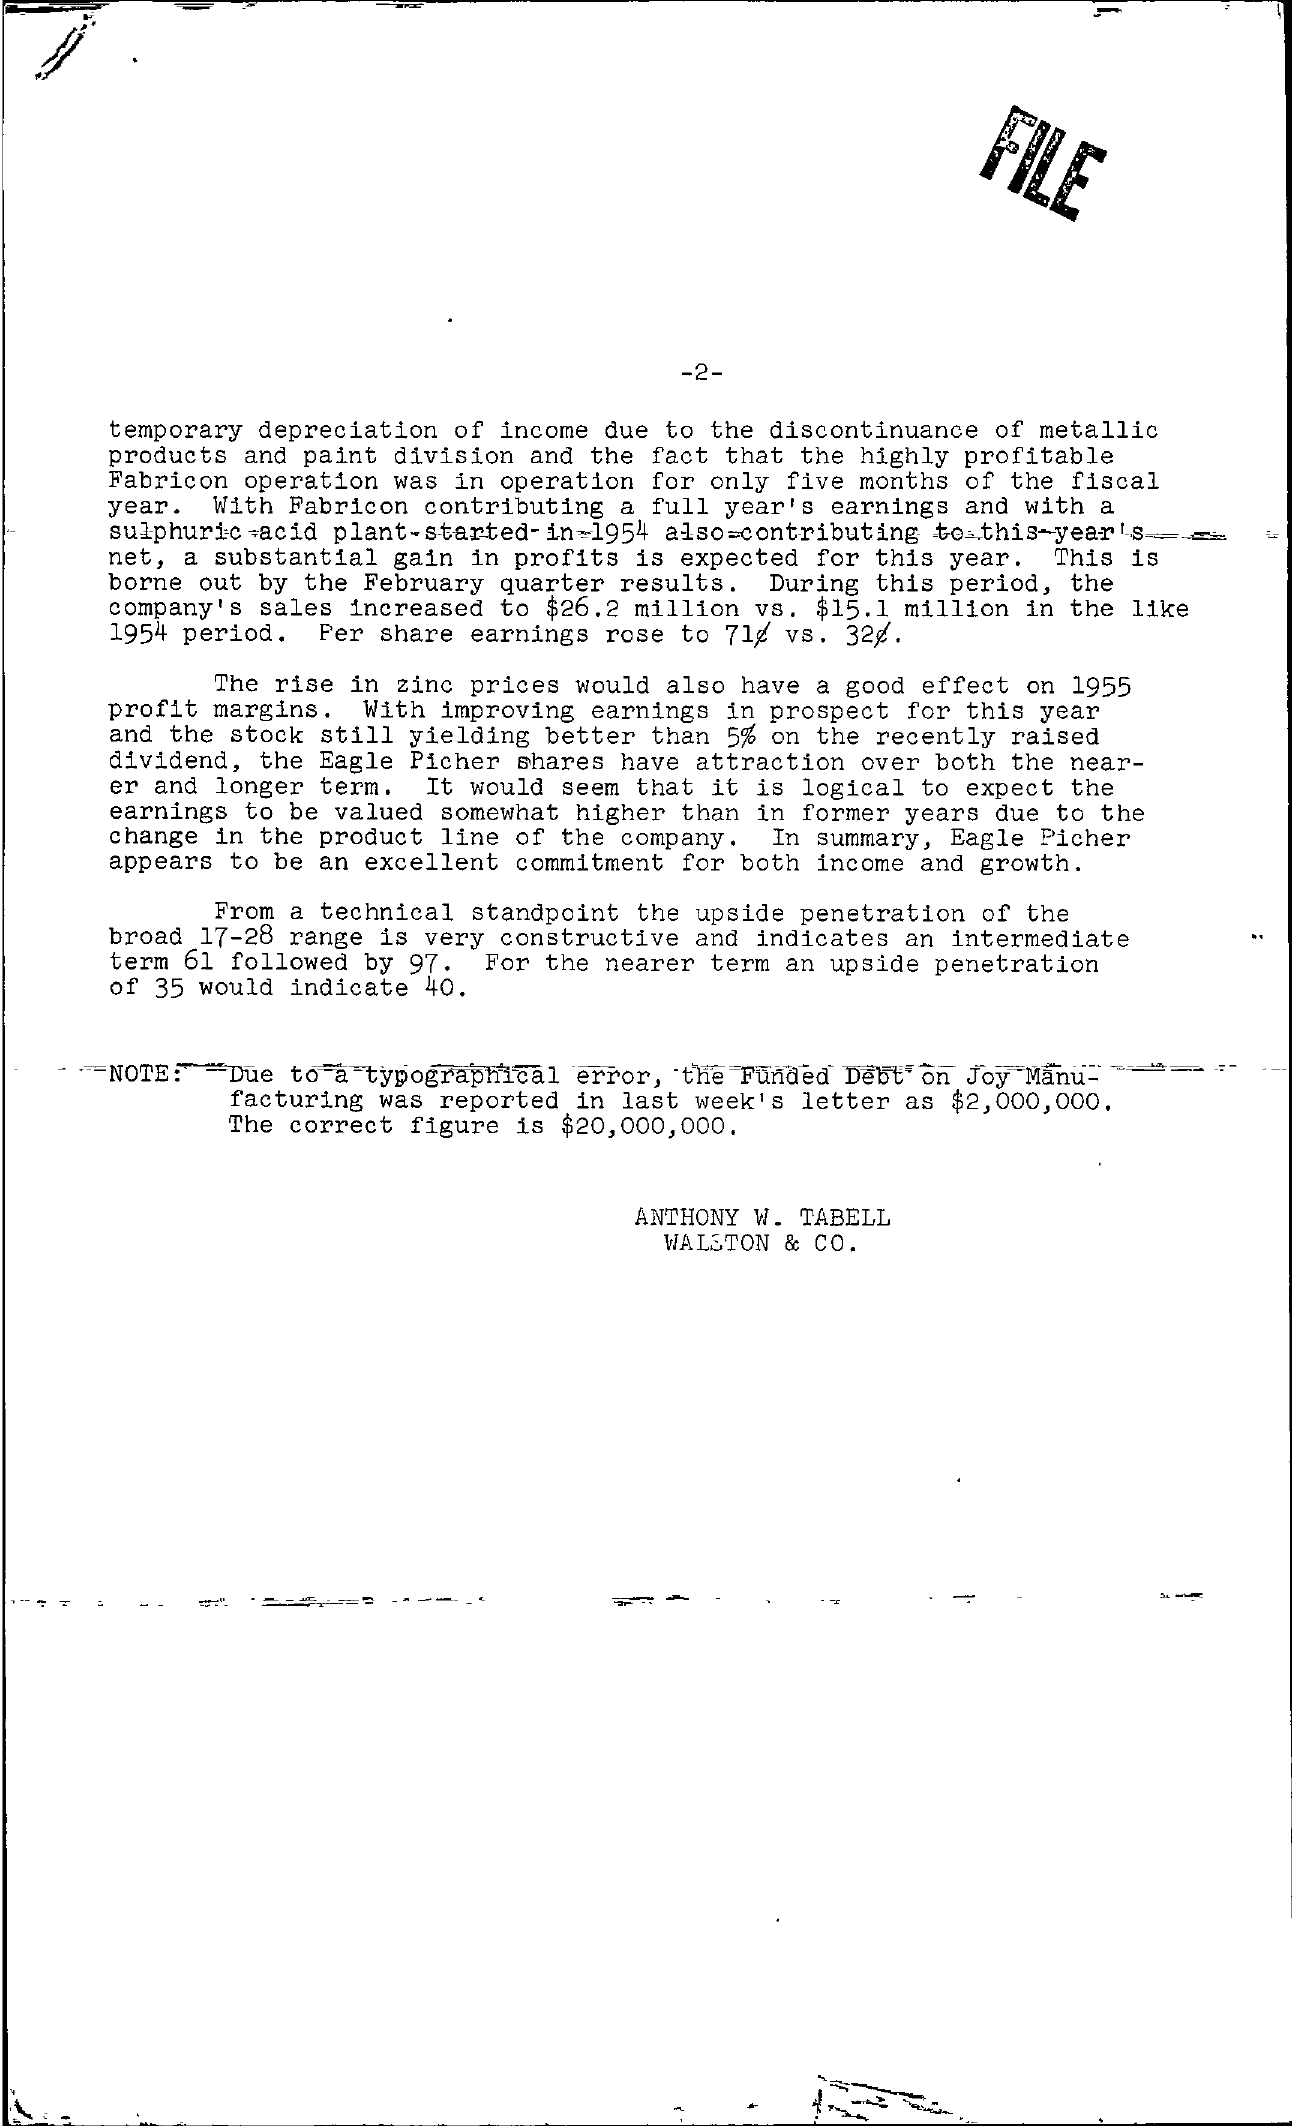 Tabell's Market Letter - June 17, 1955 page 2